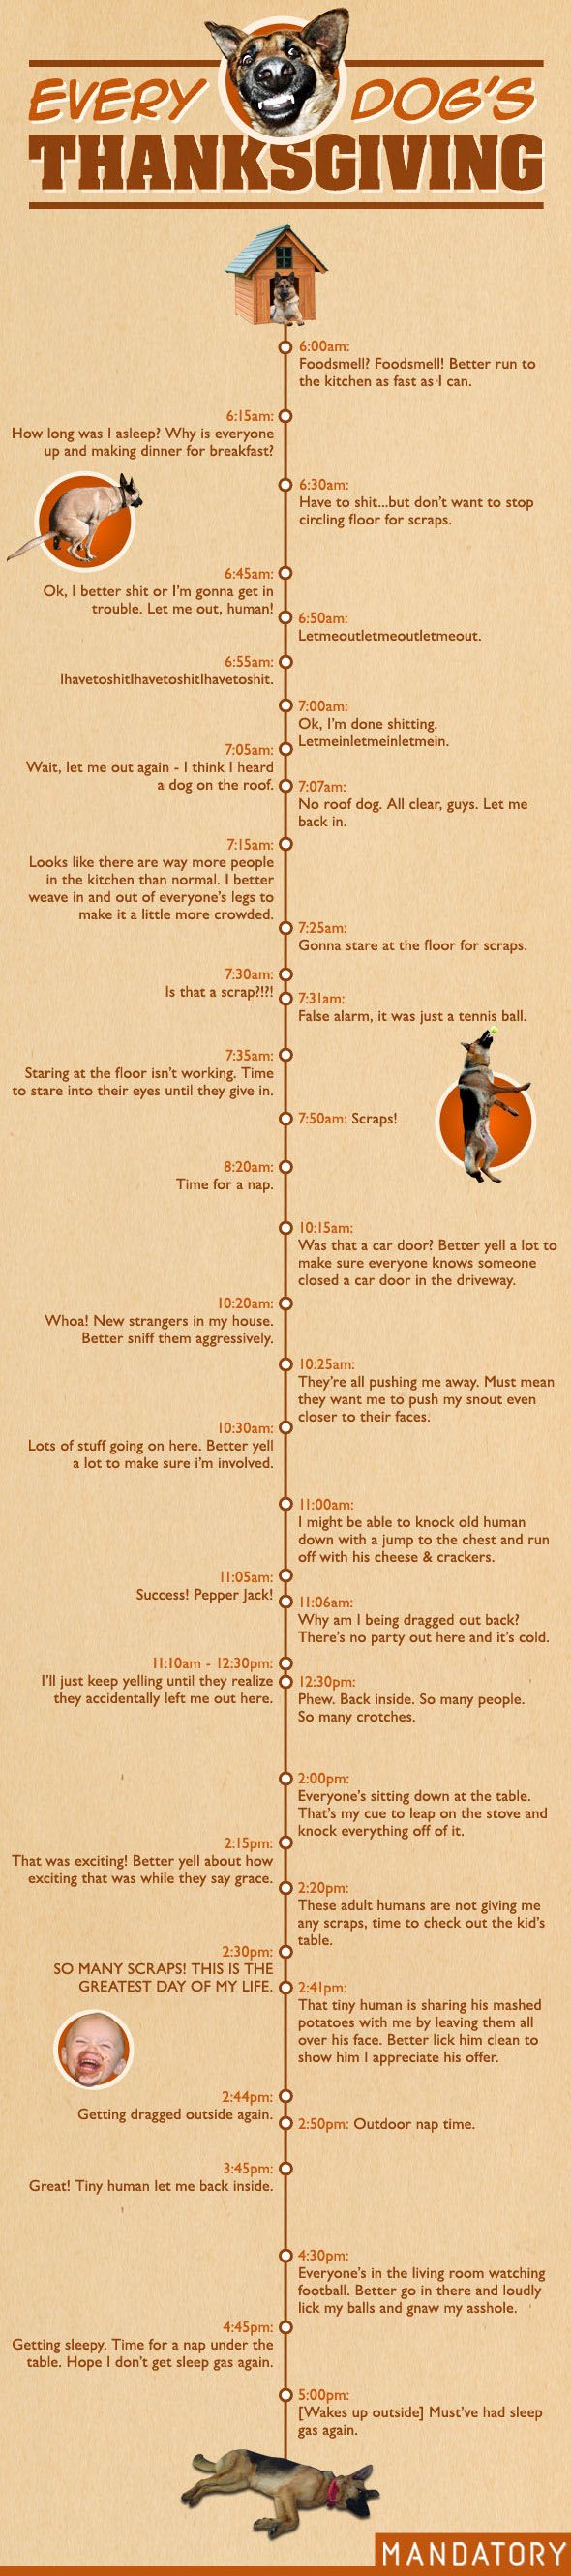 Every Dog's Thanksgiving A Timeline Dog thanksgiving